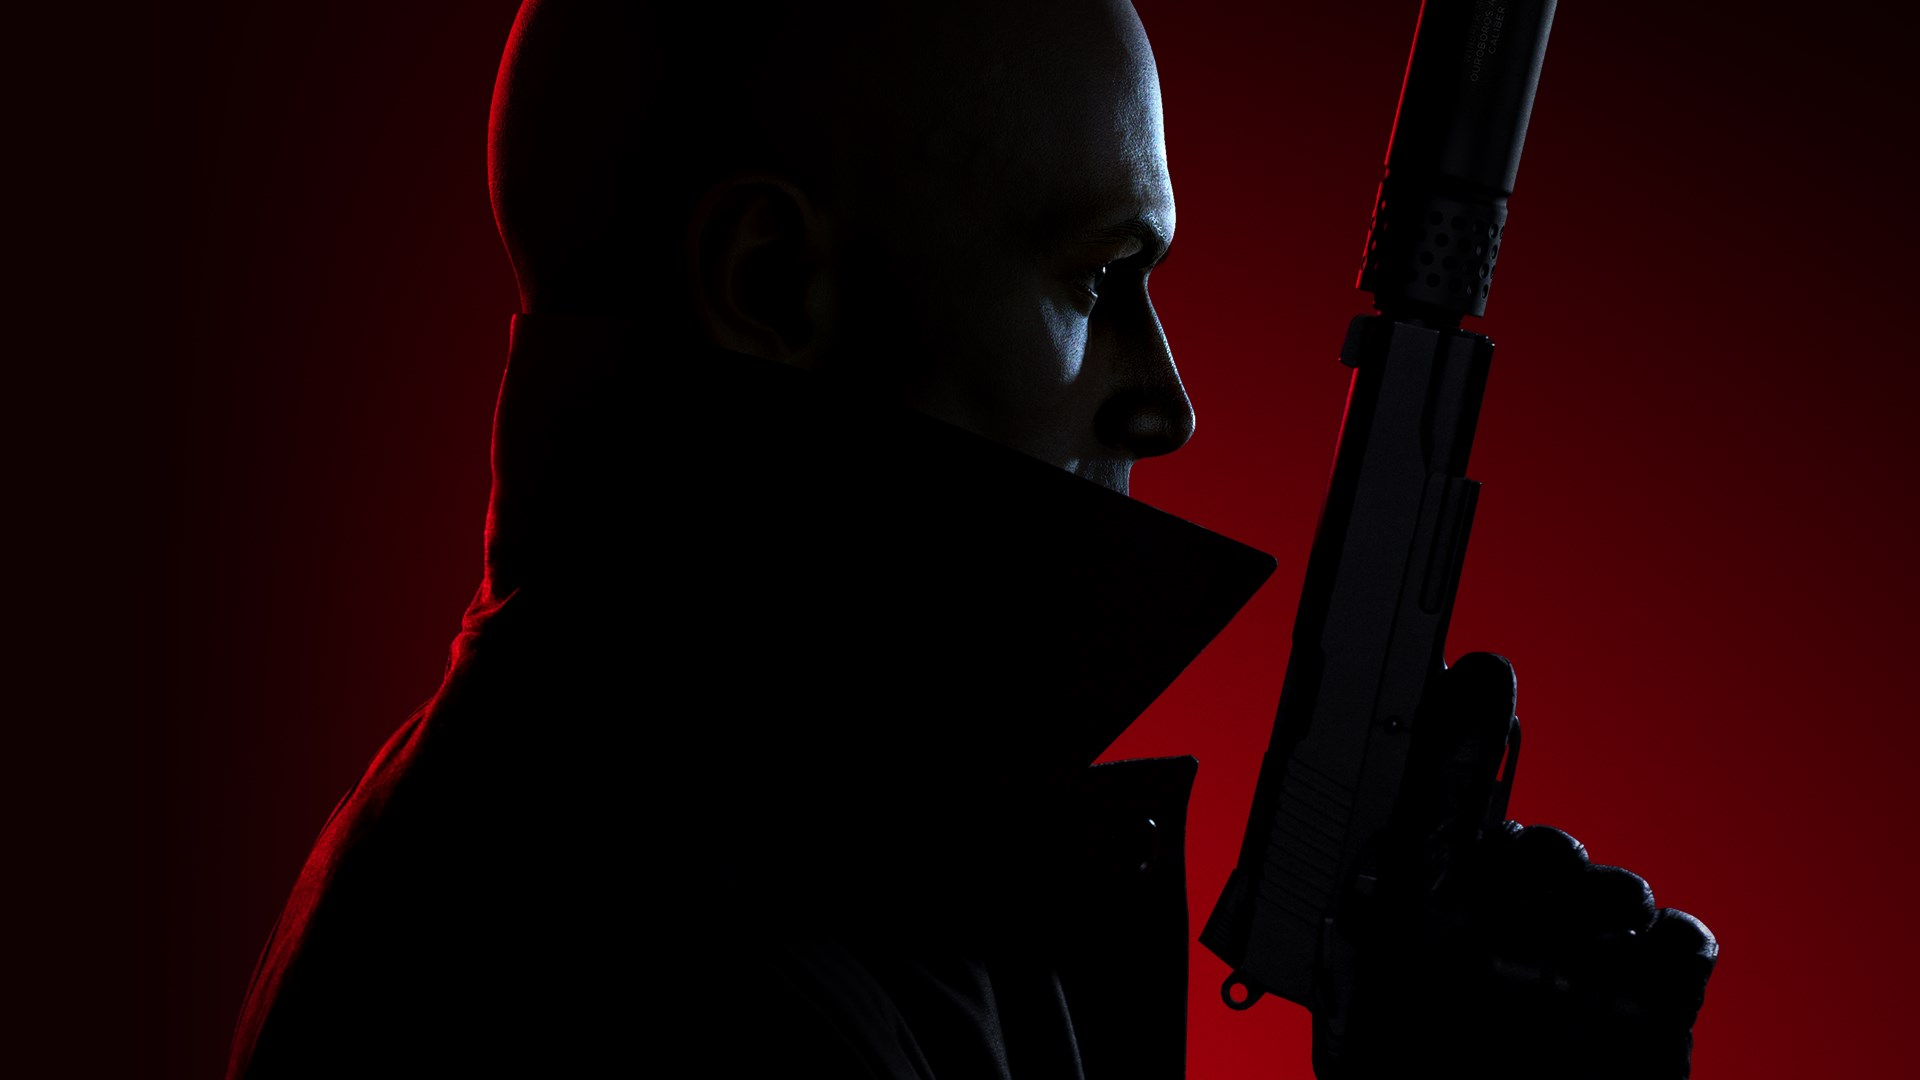 The Hitman 3 opening cinematic shows why IO Interactive were a great choice for a Bond game